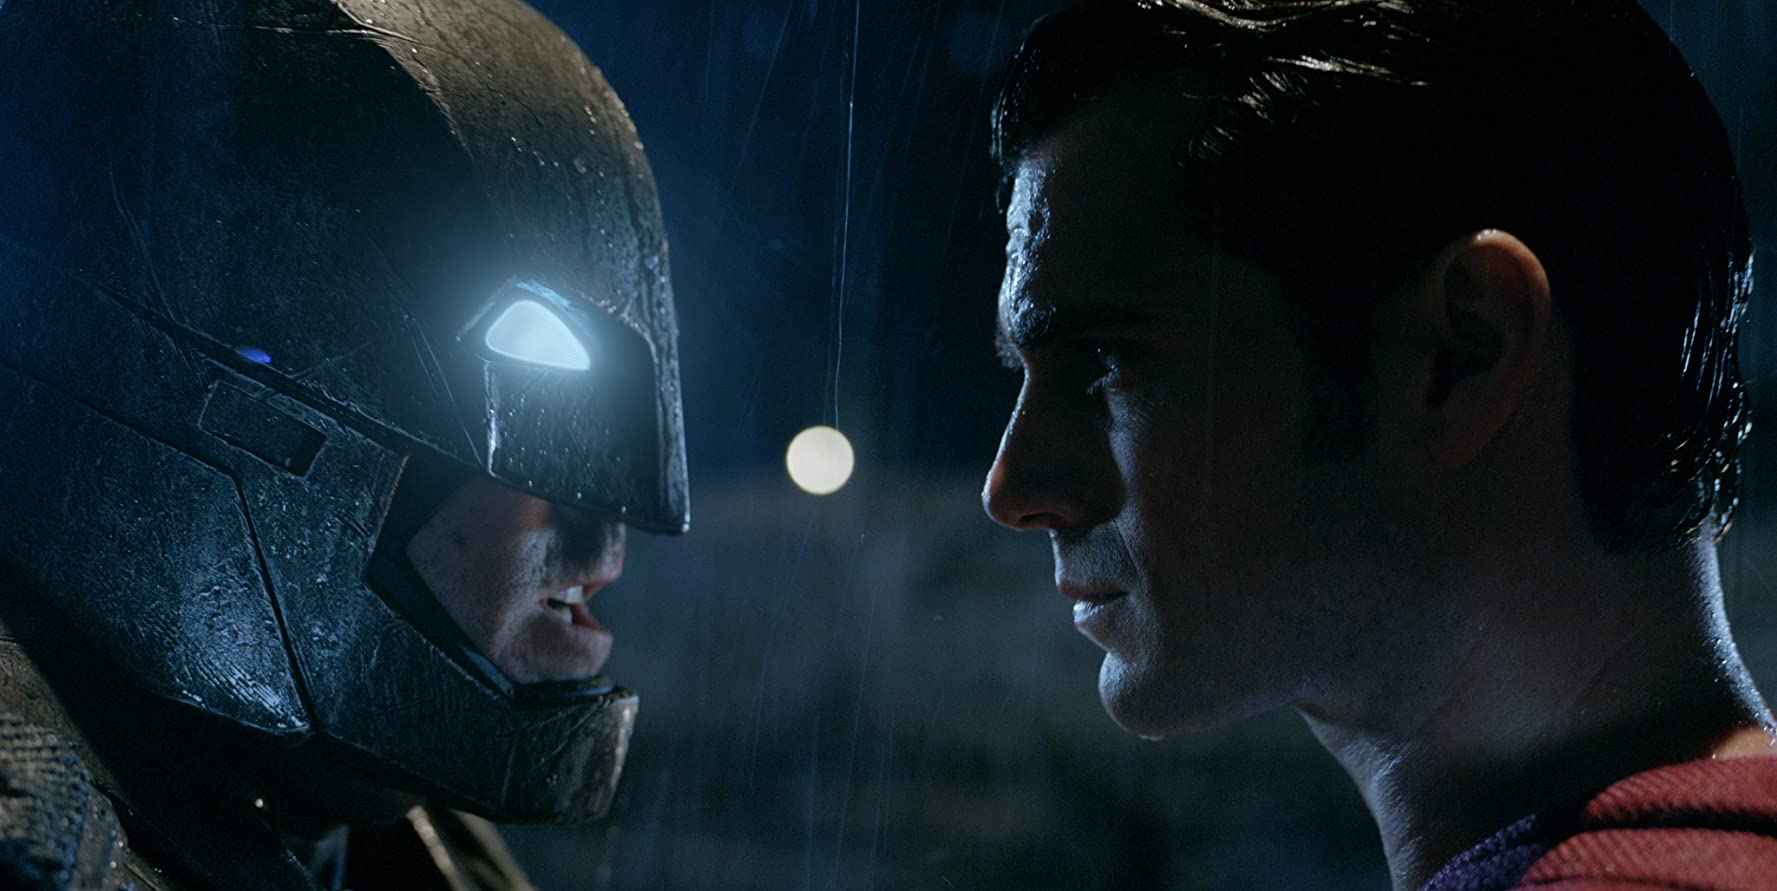 What does Zack Snyder have to say about 'Batman v Superman'?